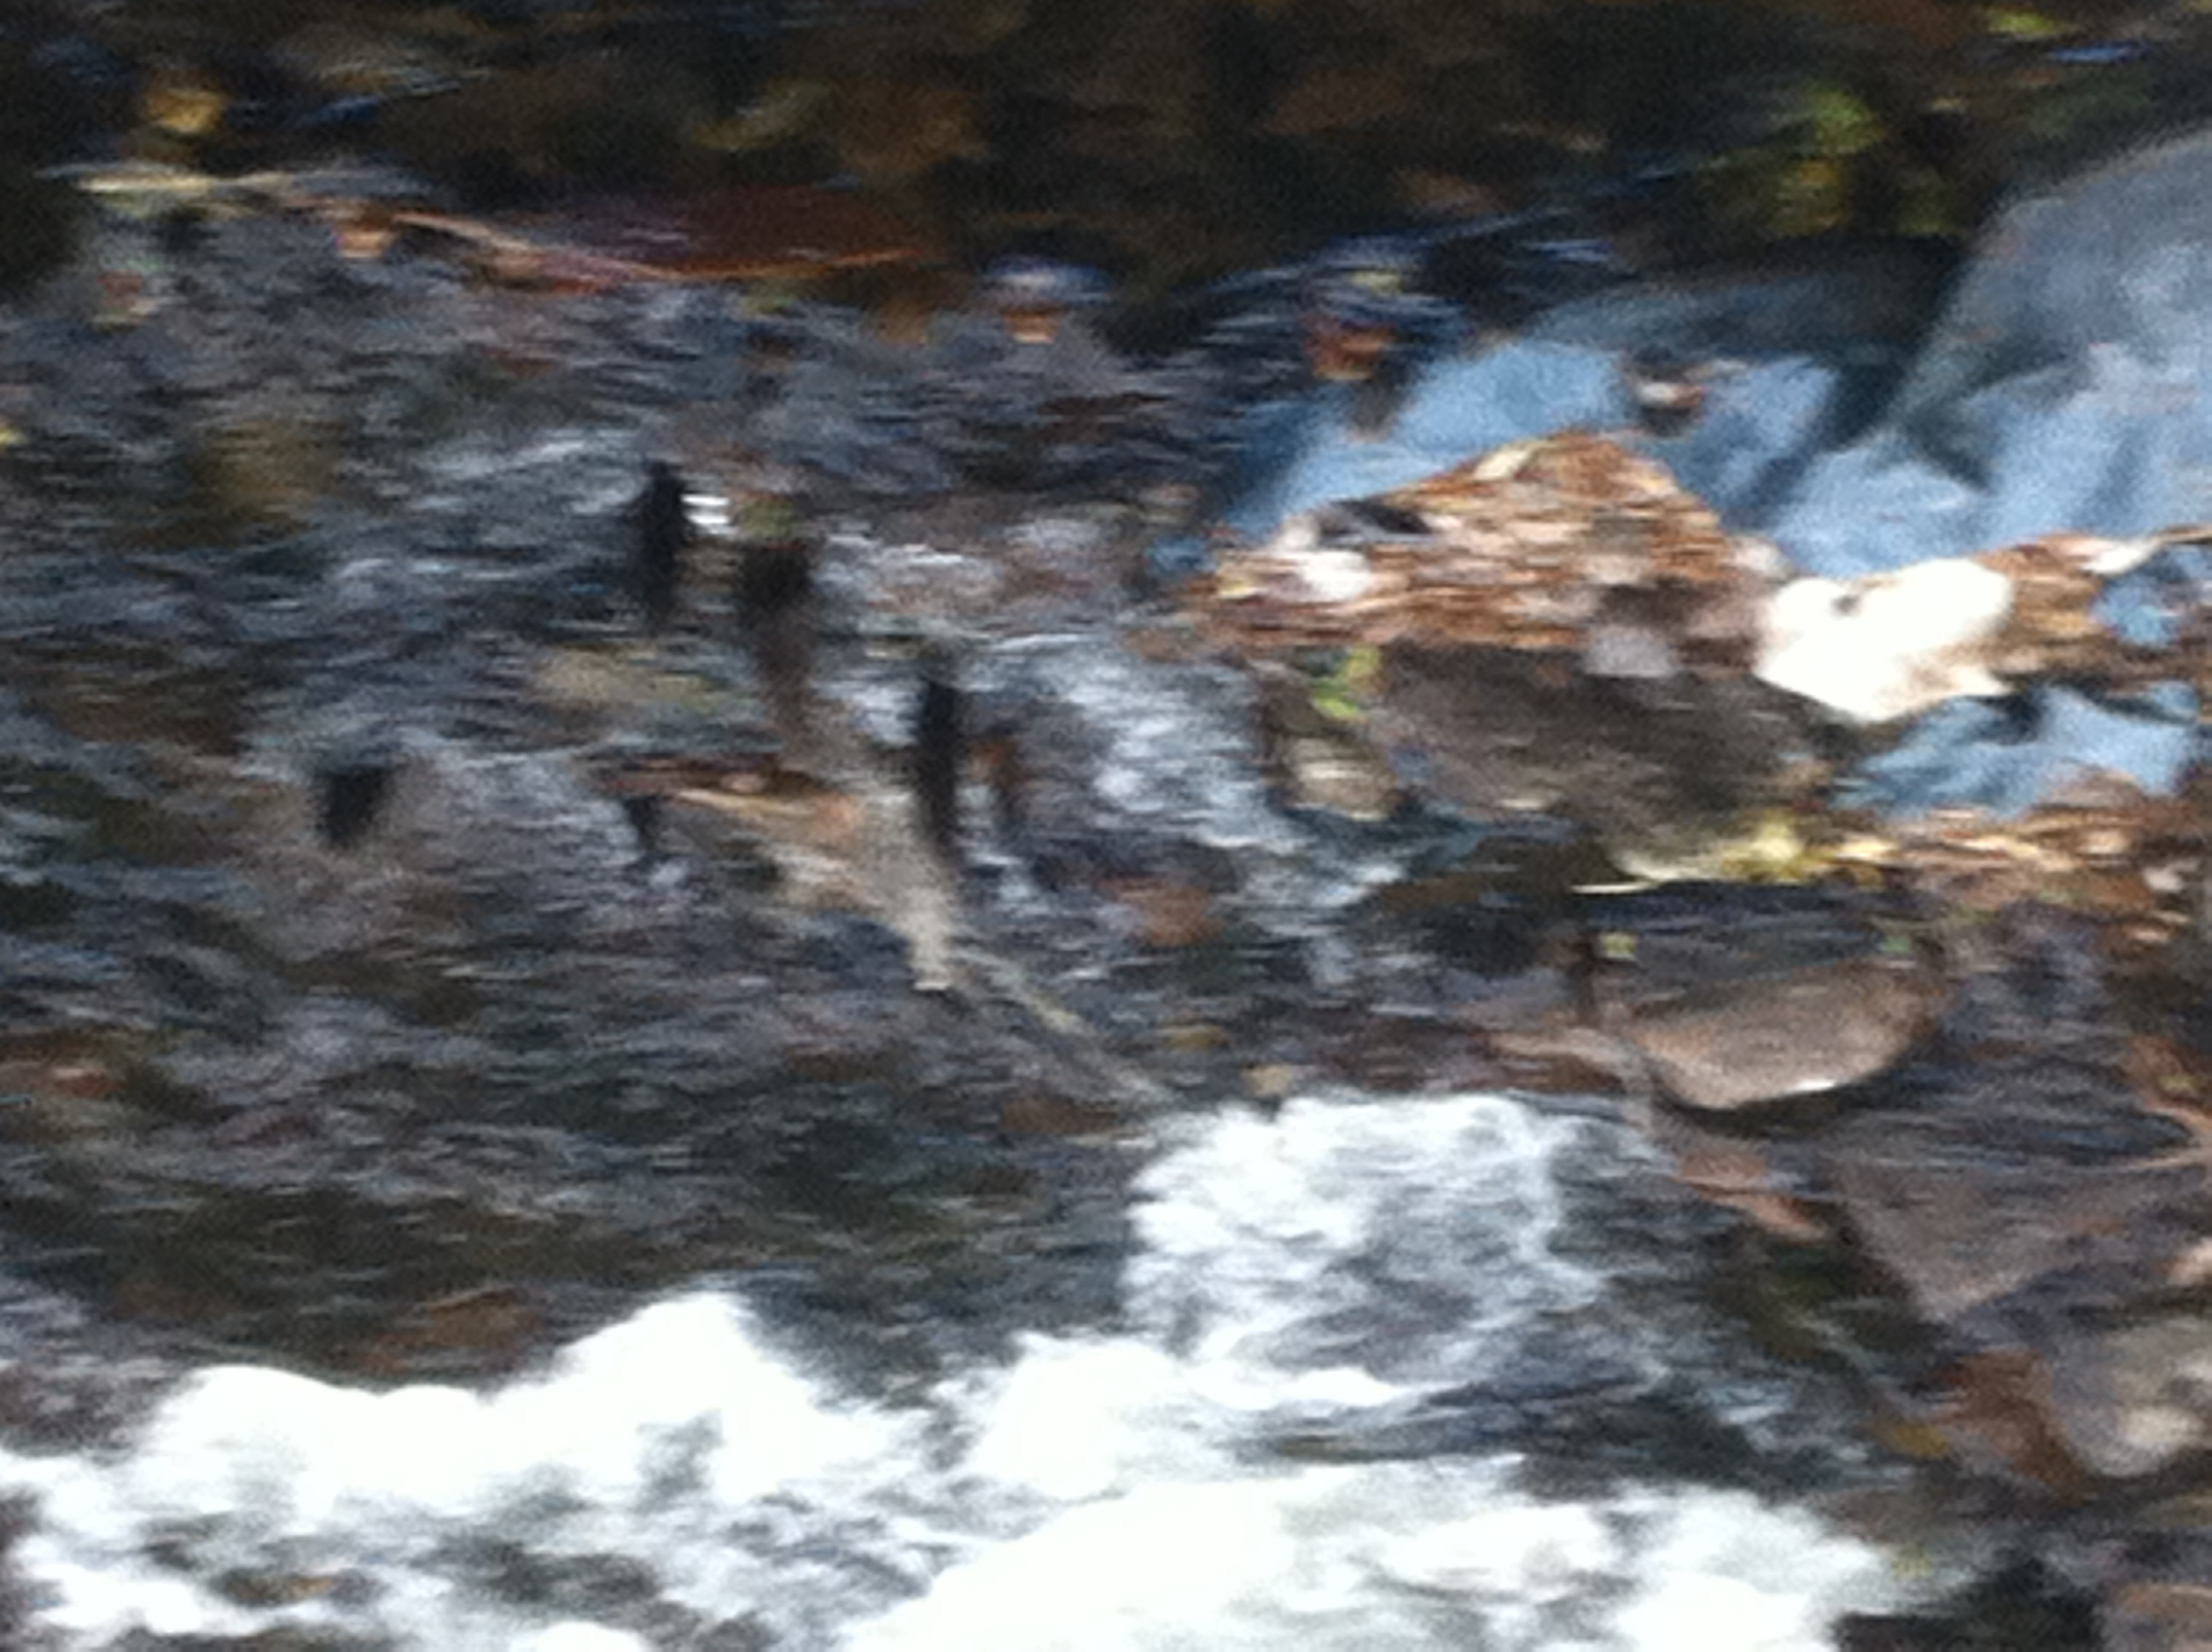 Oak stakes still visible in weir structure 2014 (4)